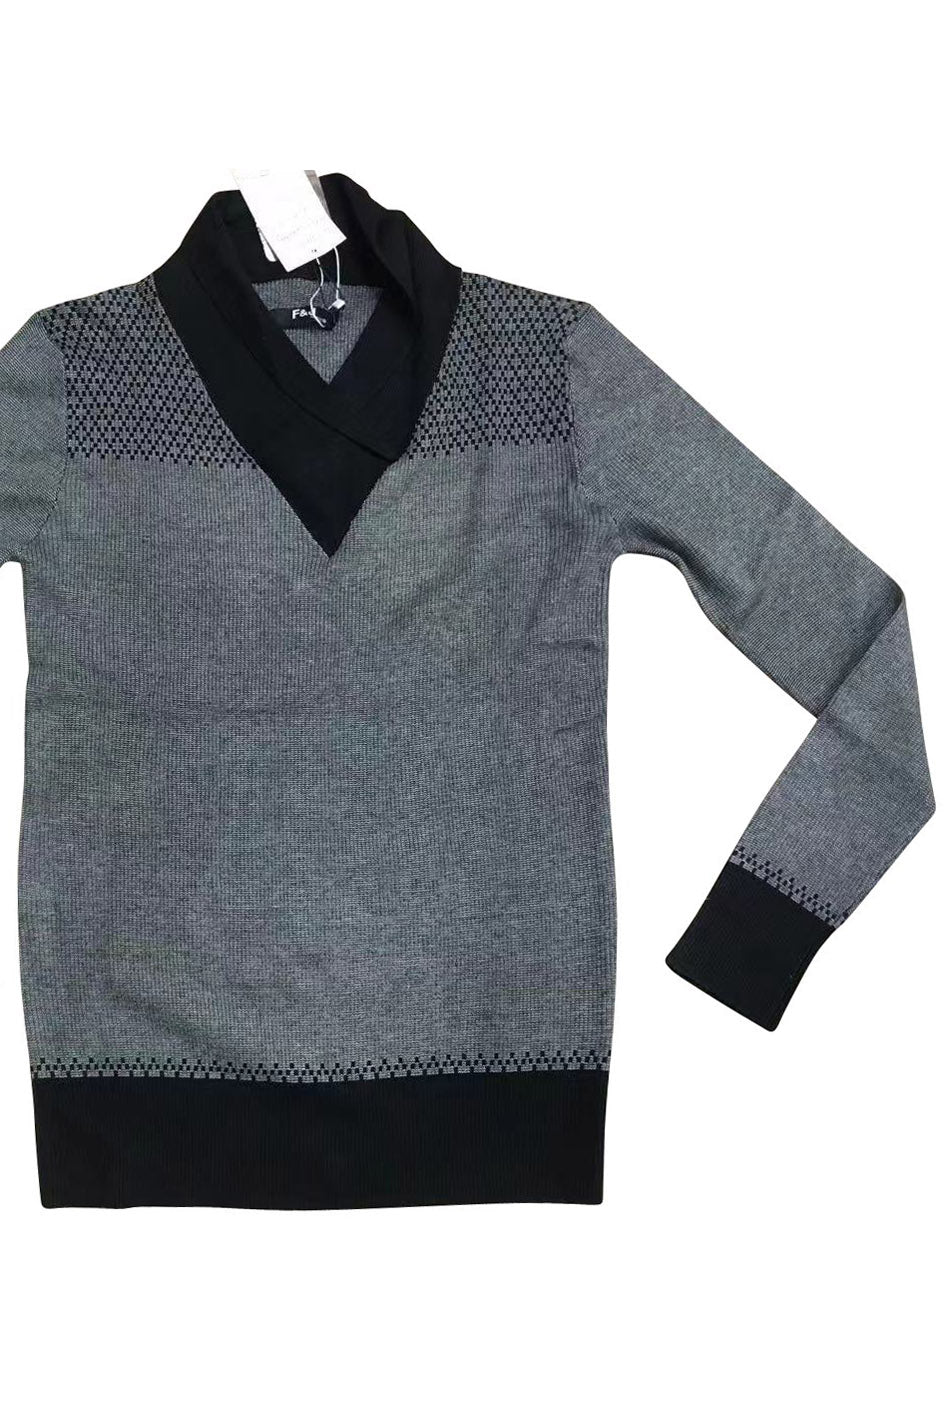 Mens Sweater - 15pcs/pack ($8.75 each)